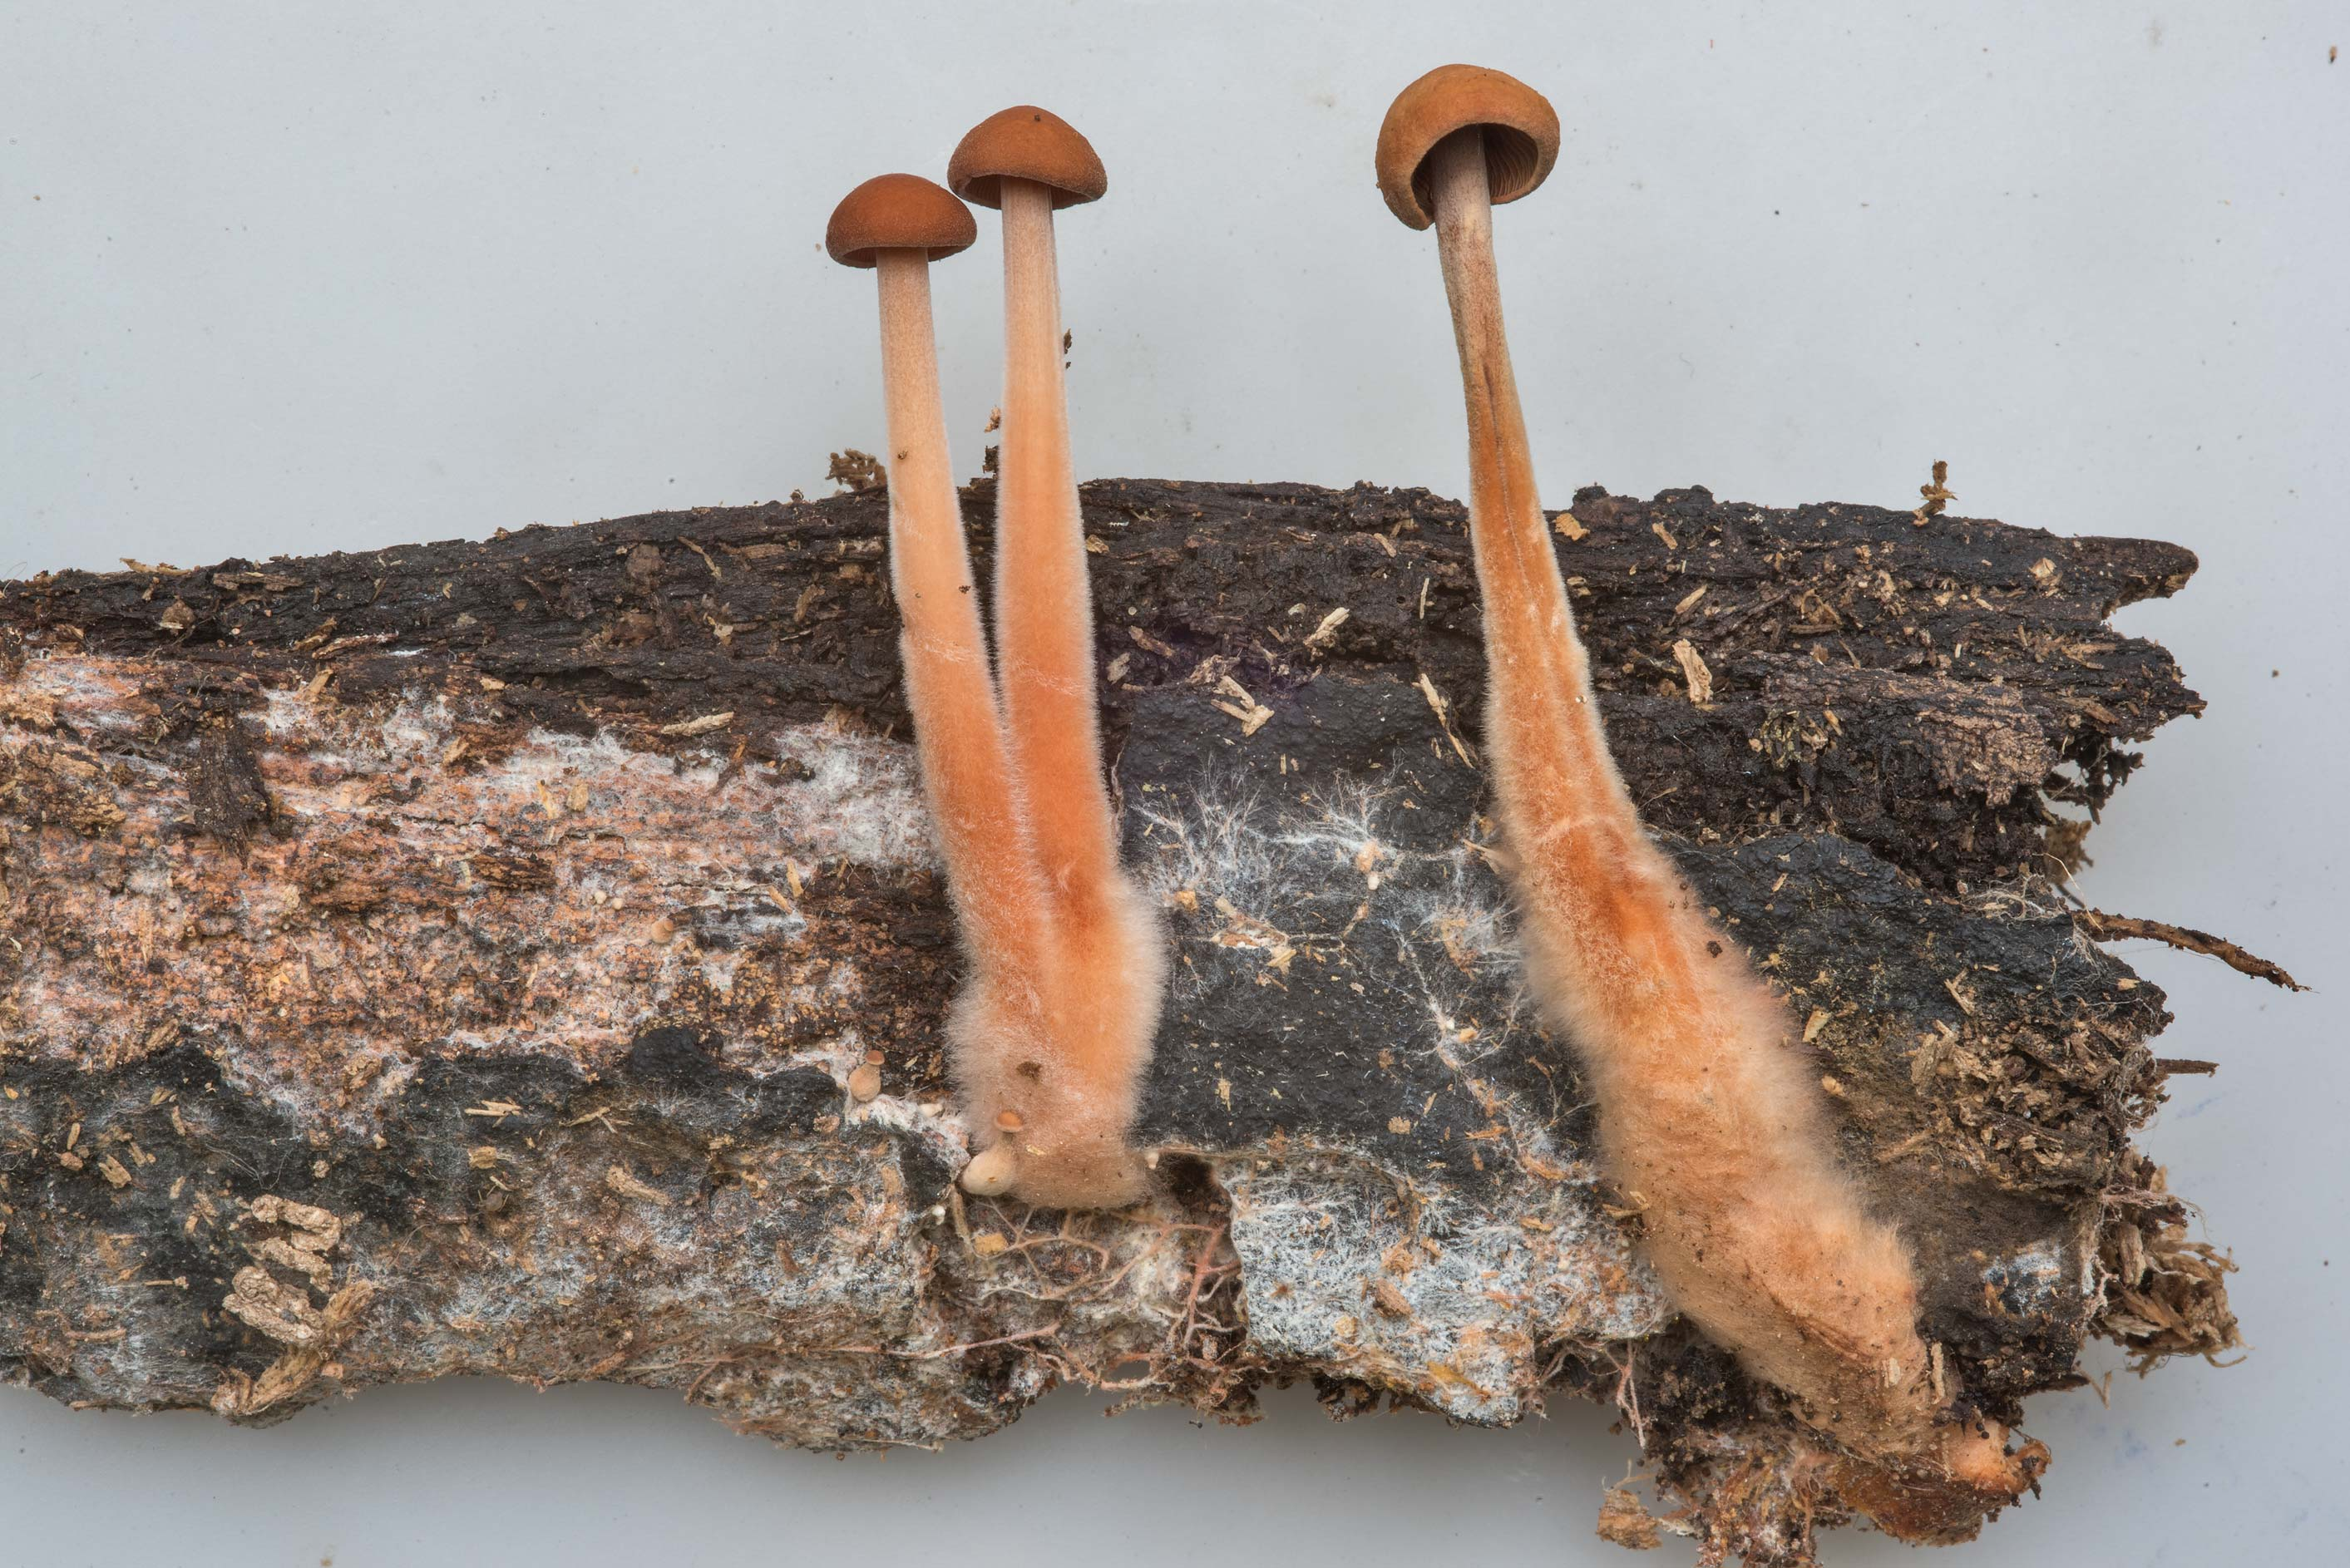 Close up of Gymnopus spongiosus mushrooms on...Nature Trail. College Station, Texas